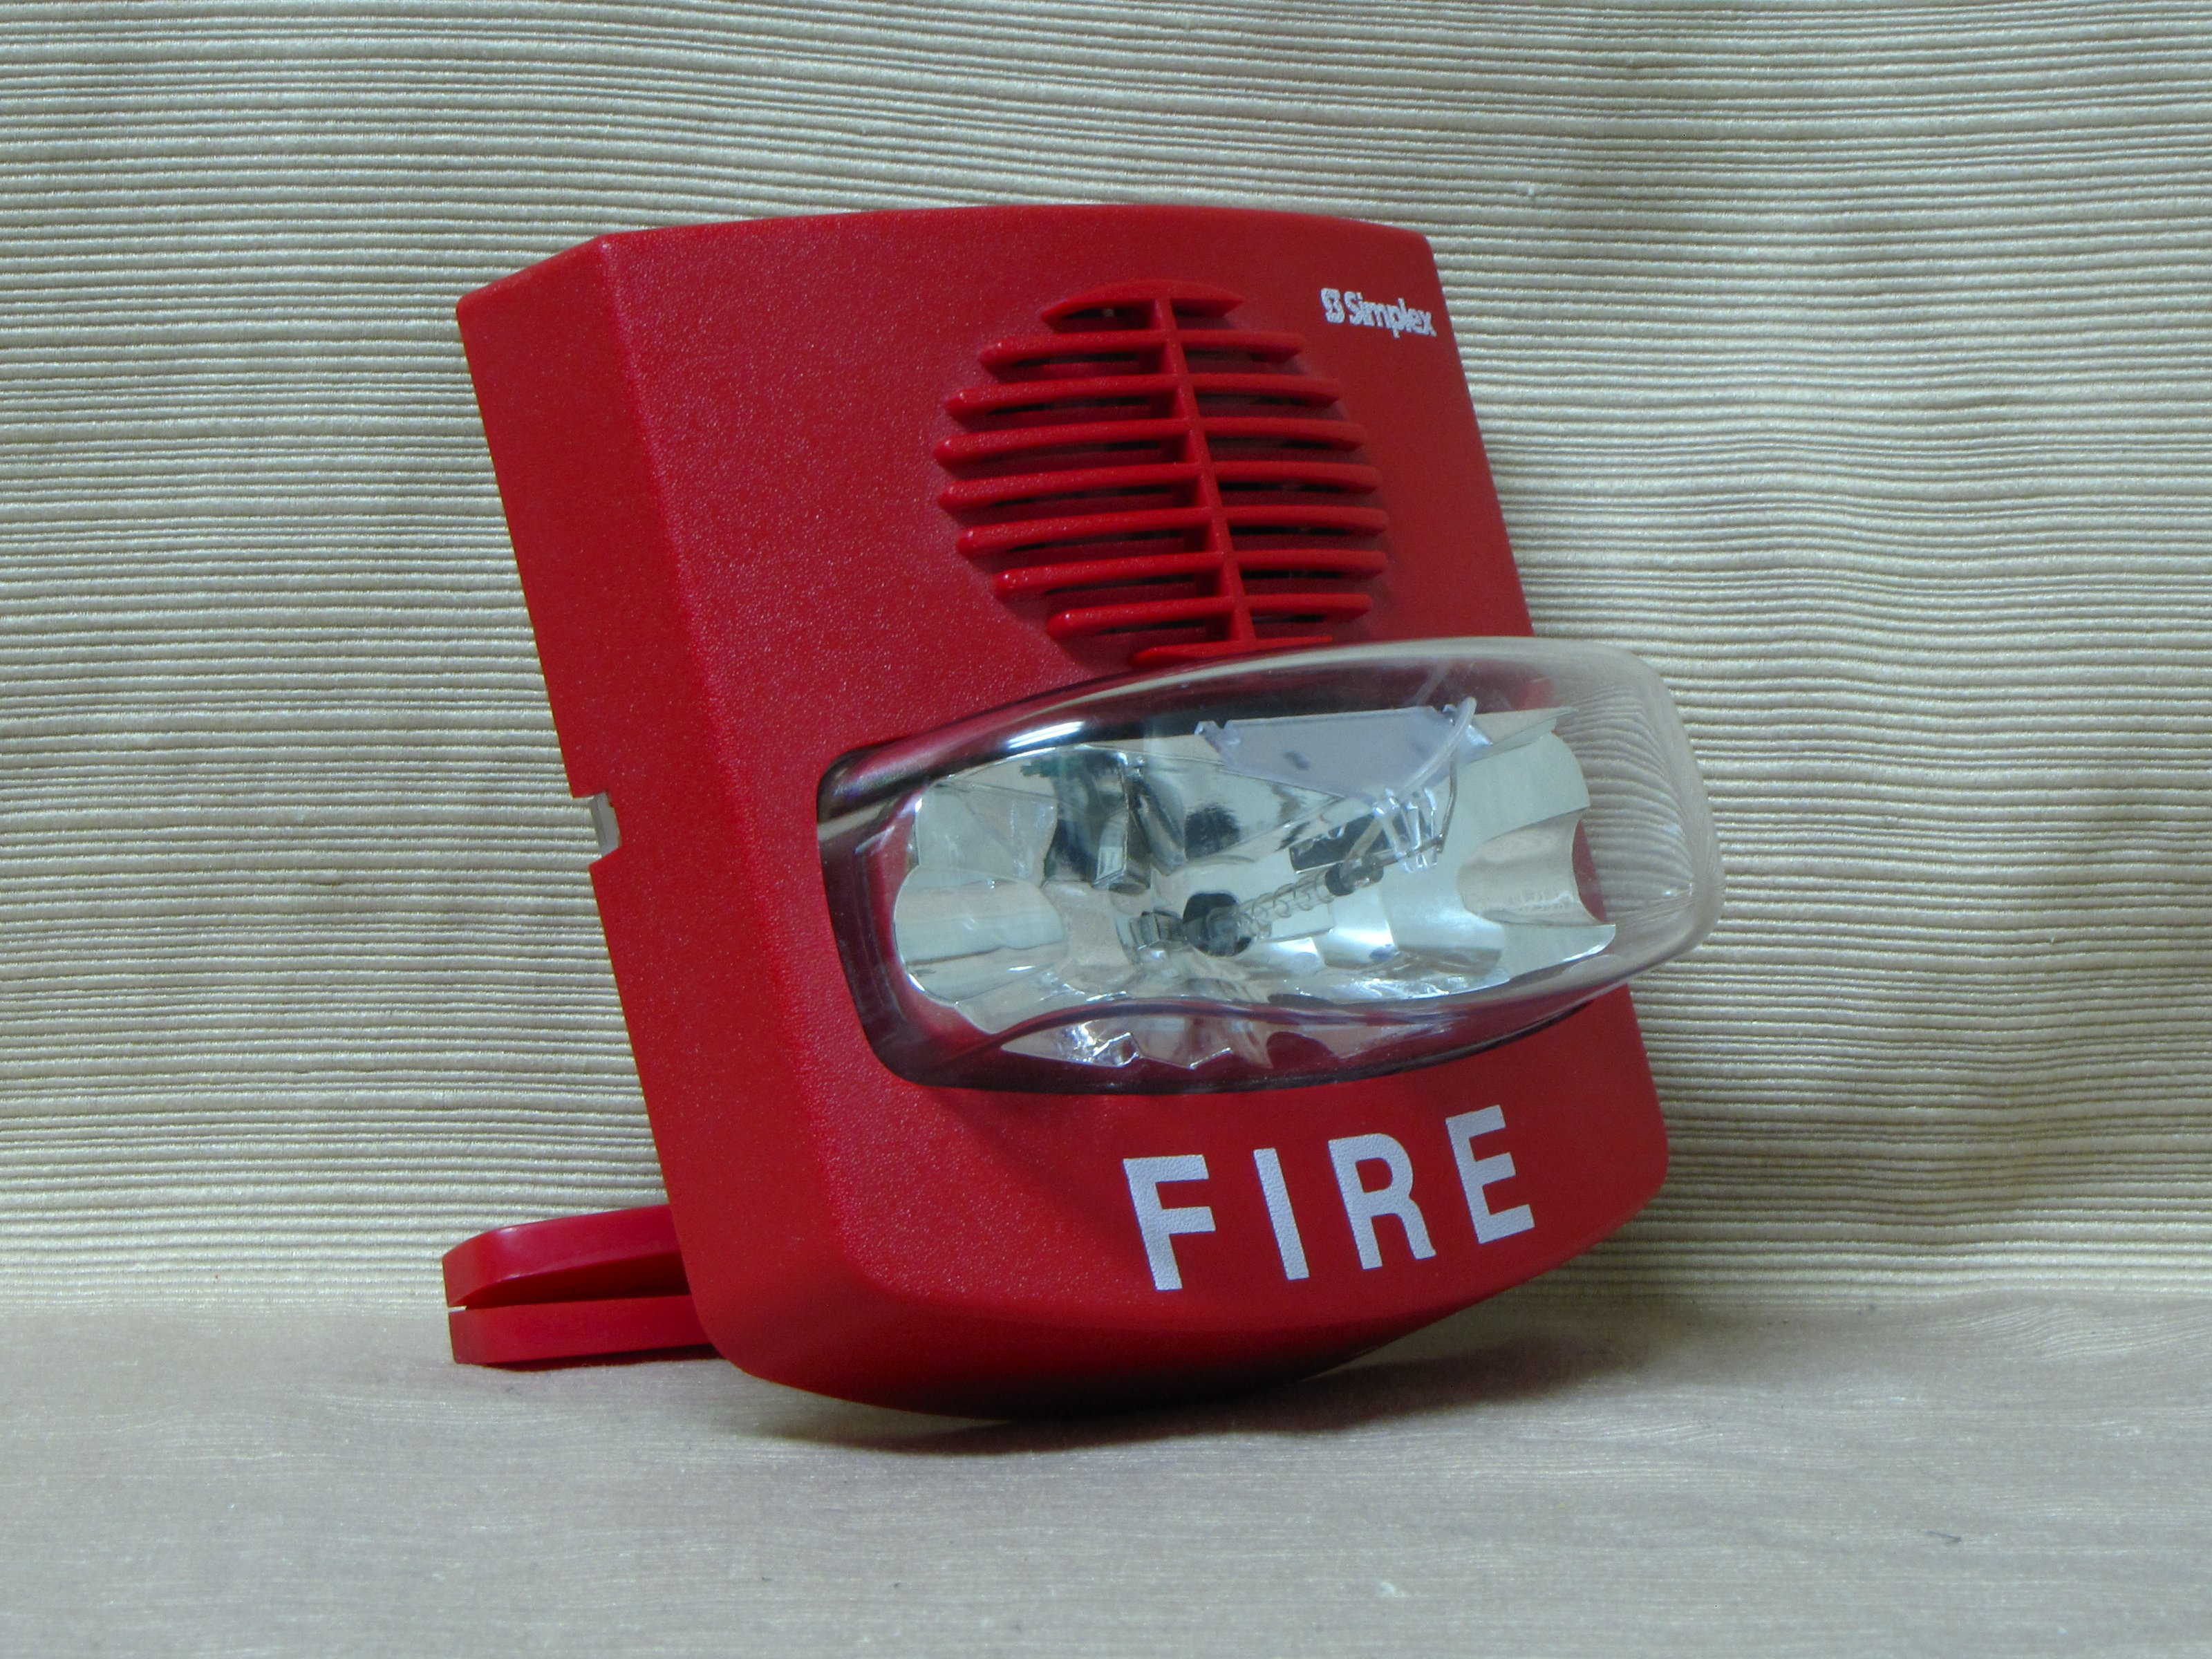 New Fire Alarms At Work Again moreover Model L General Alarm Siren also Sku S2 0607 likewise Model 102 Dual Truck Horn in addition Bullet Blaster. on fire horn sound